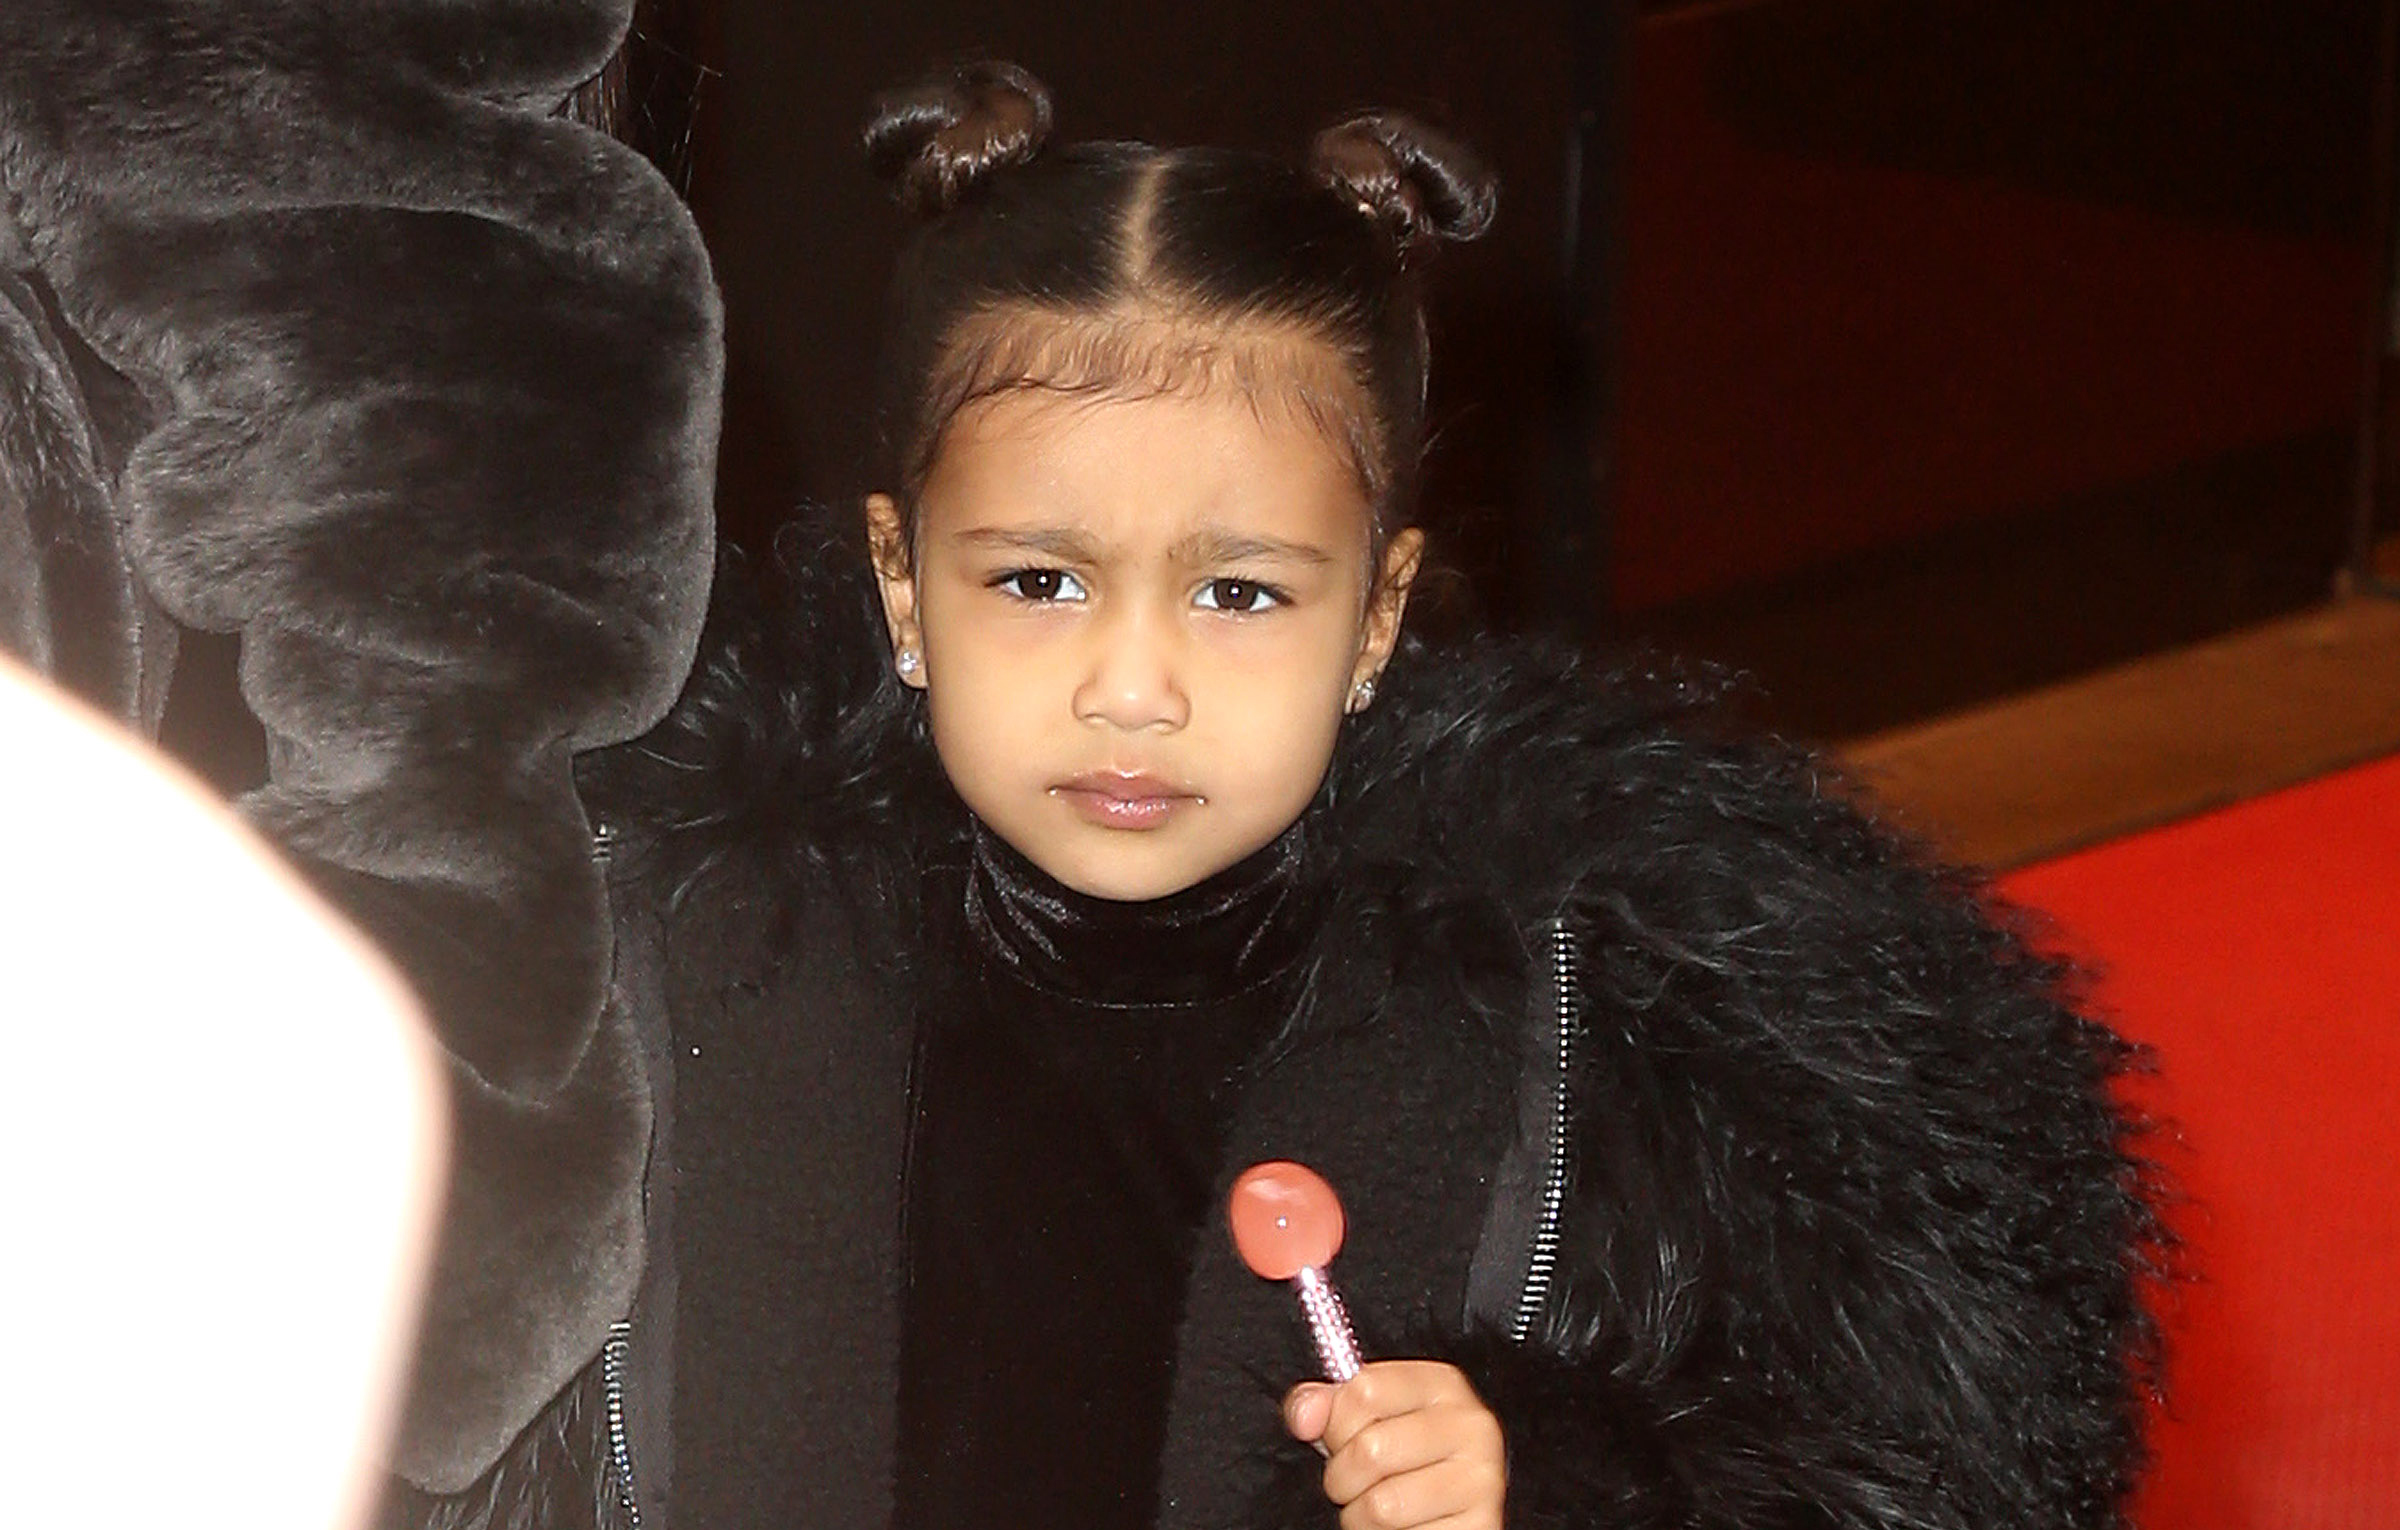 North WestKim Kardashian out and about, New York, USA - 01 Feb 2017Kim Kardashian and kids leaving home in New York City